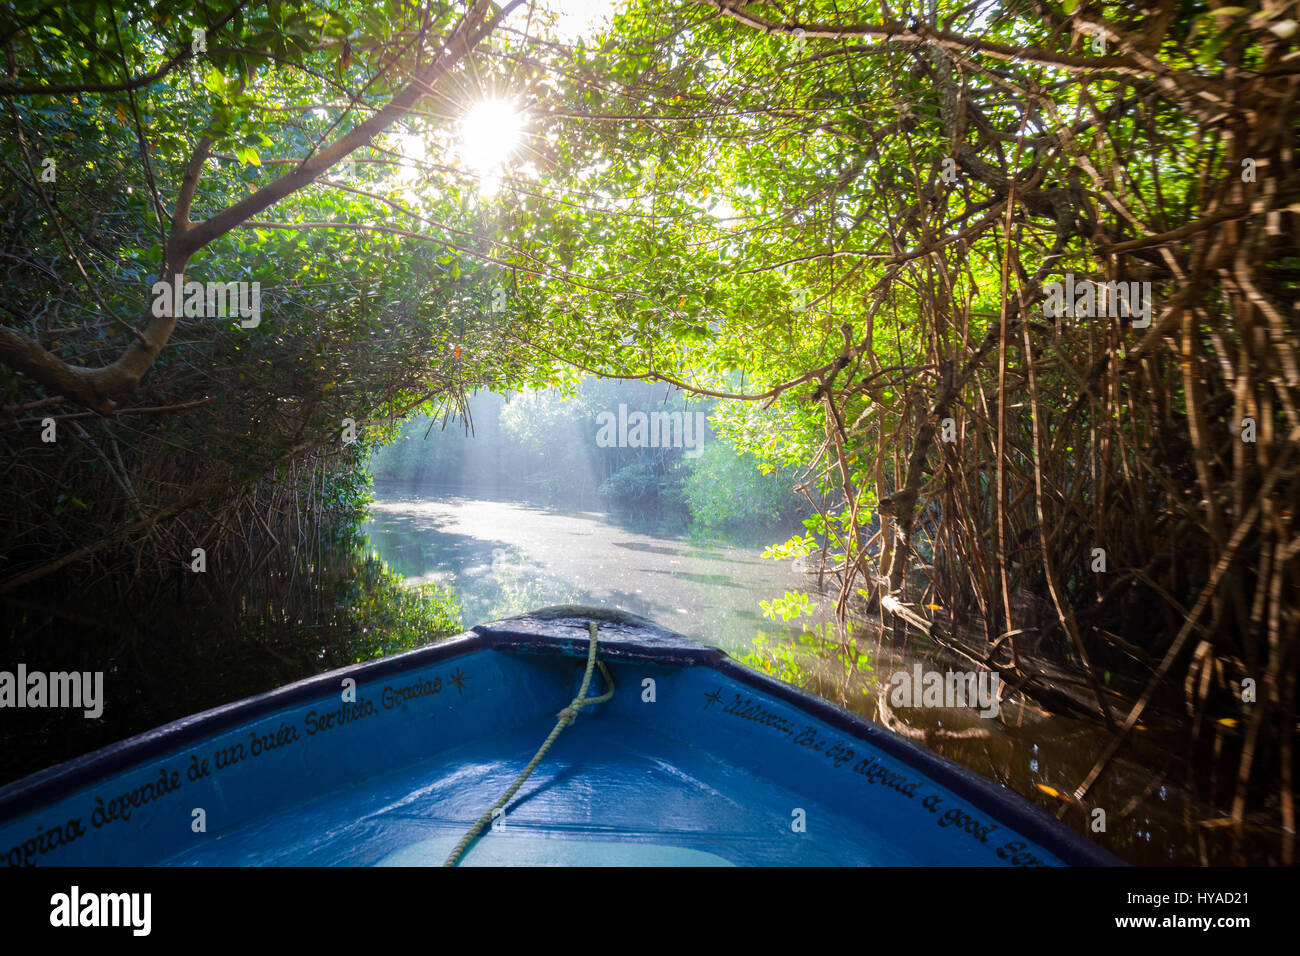 A tunnel of mangroves awaits a boat in the Tovara Natural Reserve in San Blas, Mexico. - Stock Image